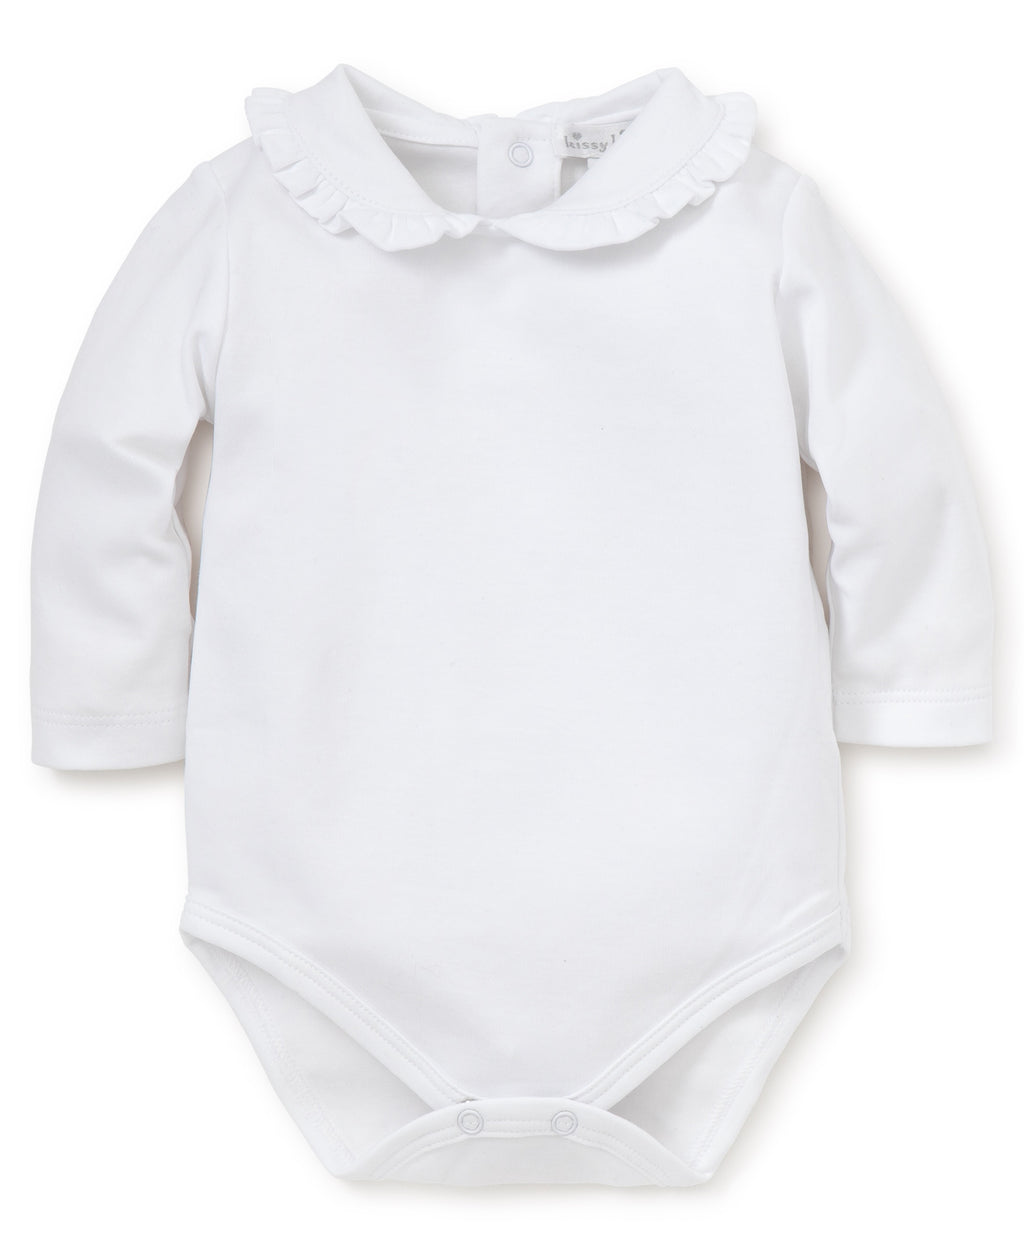 Kissy Kissy L/S Body w/Ruffle Collar